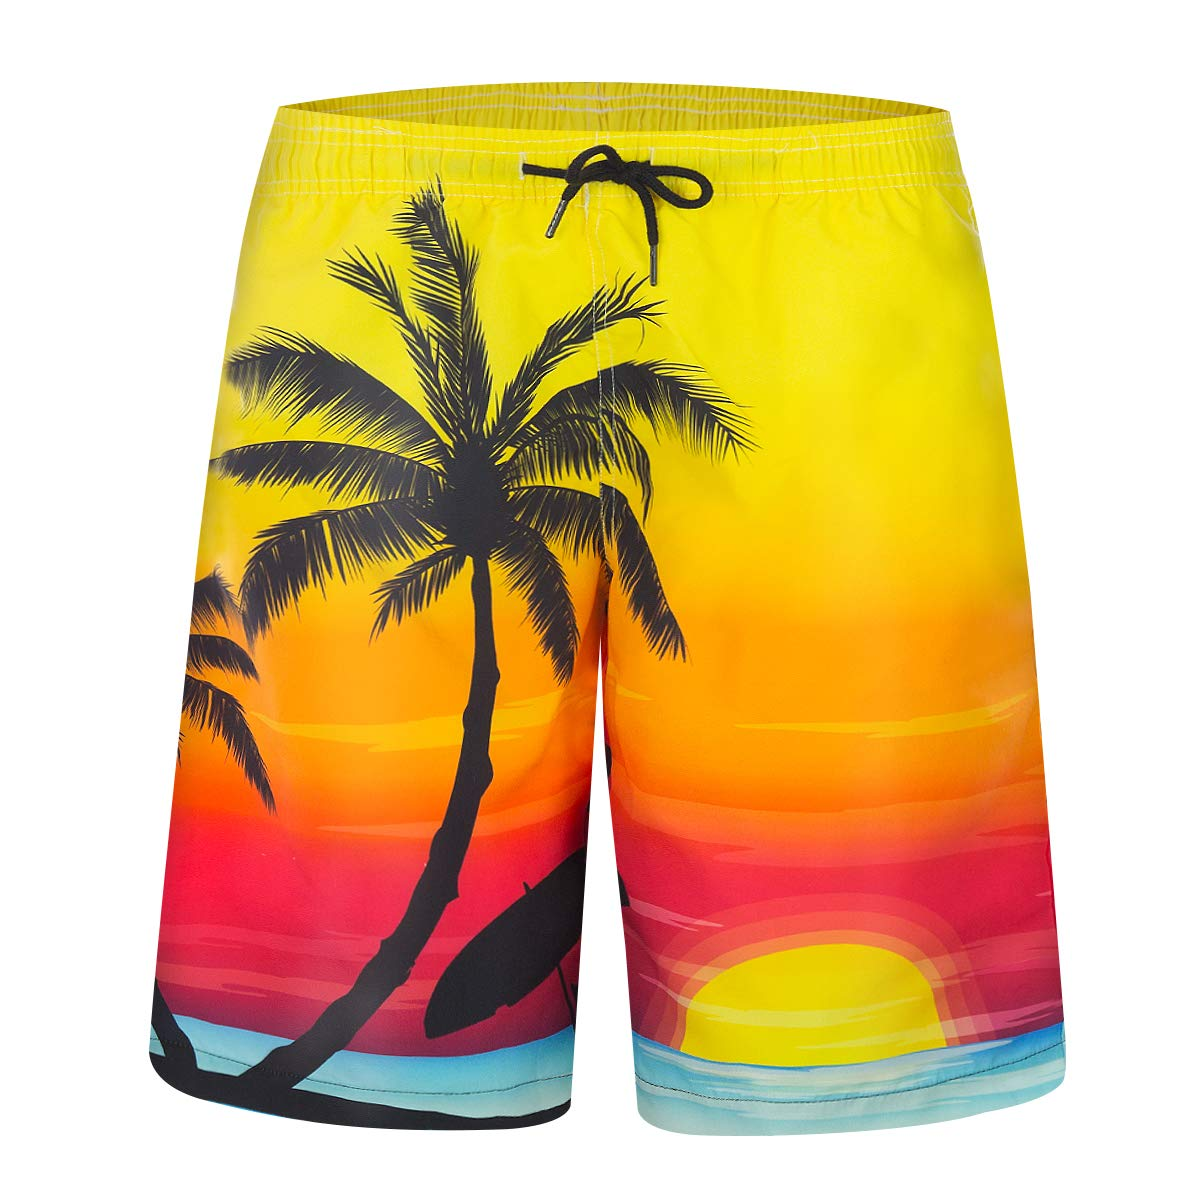 iCKER Mens Swim Trunks Quick Dry Suits Summer Holiday Beach Shorts